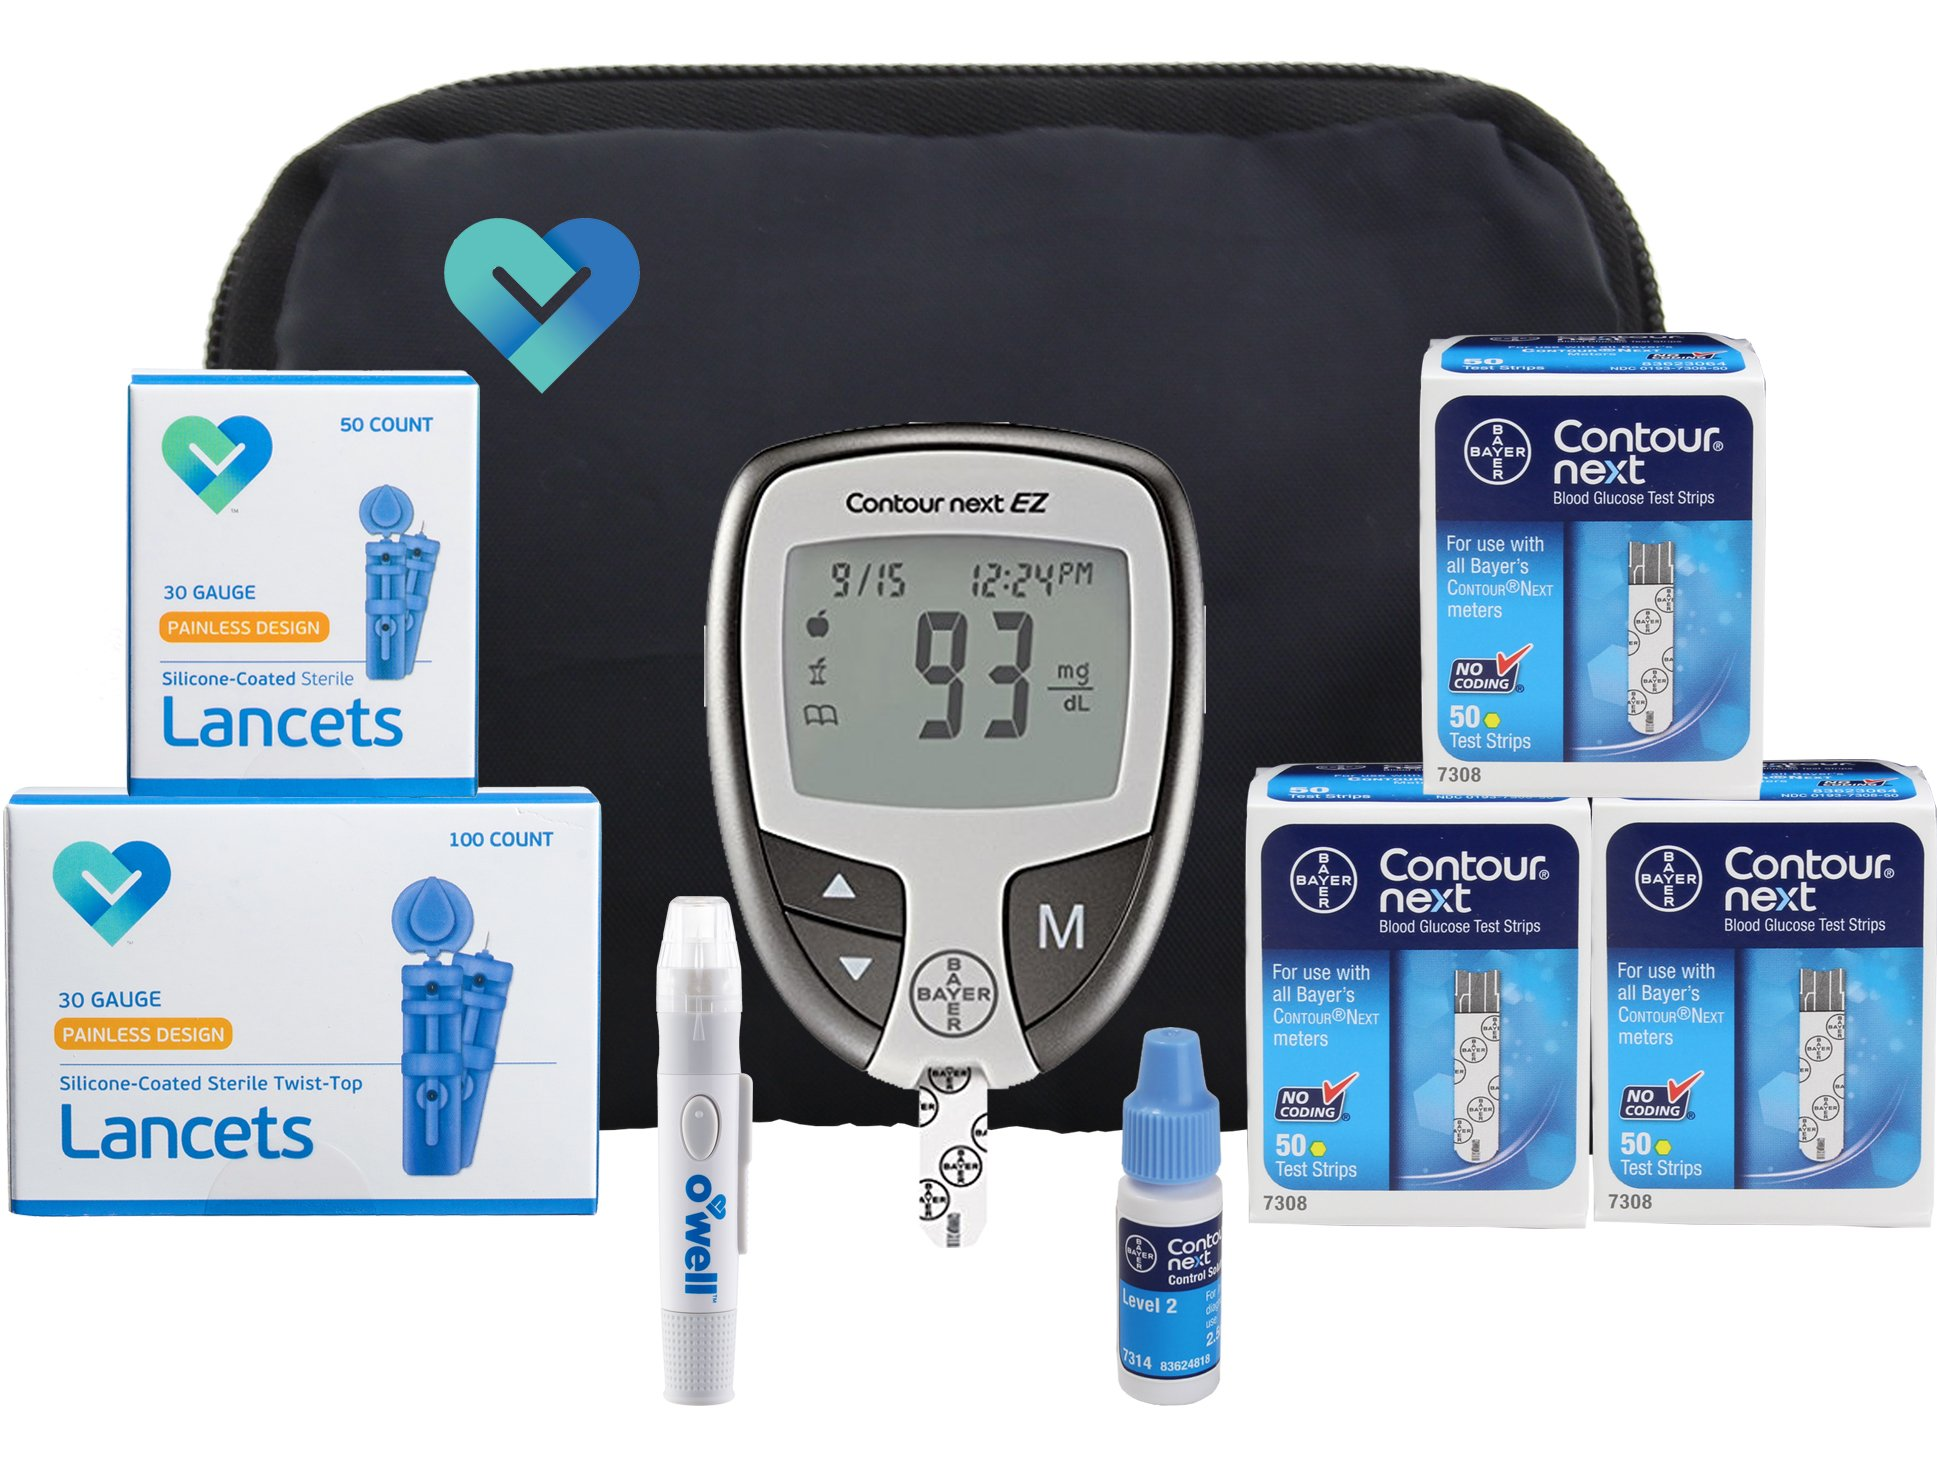 Contour NEXT Blood Sugar Testing Kit, 150 Count | Contour NEXT EZ Meter, 150 Contour NEXT Blood Glucose Test Strips, 150 Lancets, Lancing Device, Control Solution, Manual's, Log Book & Carry Case